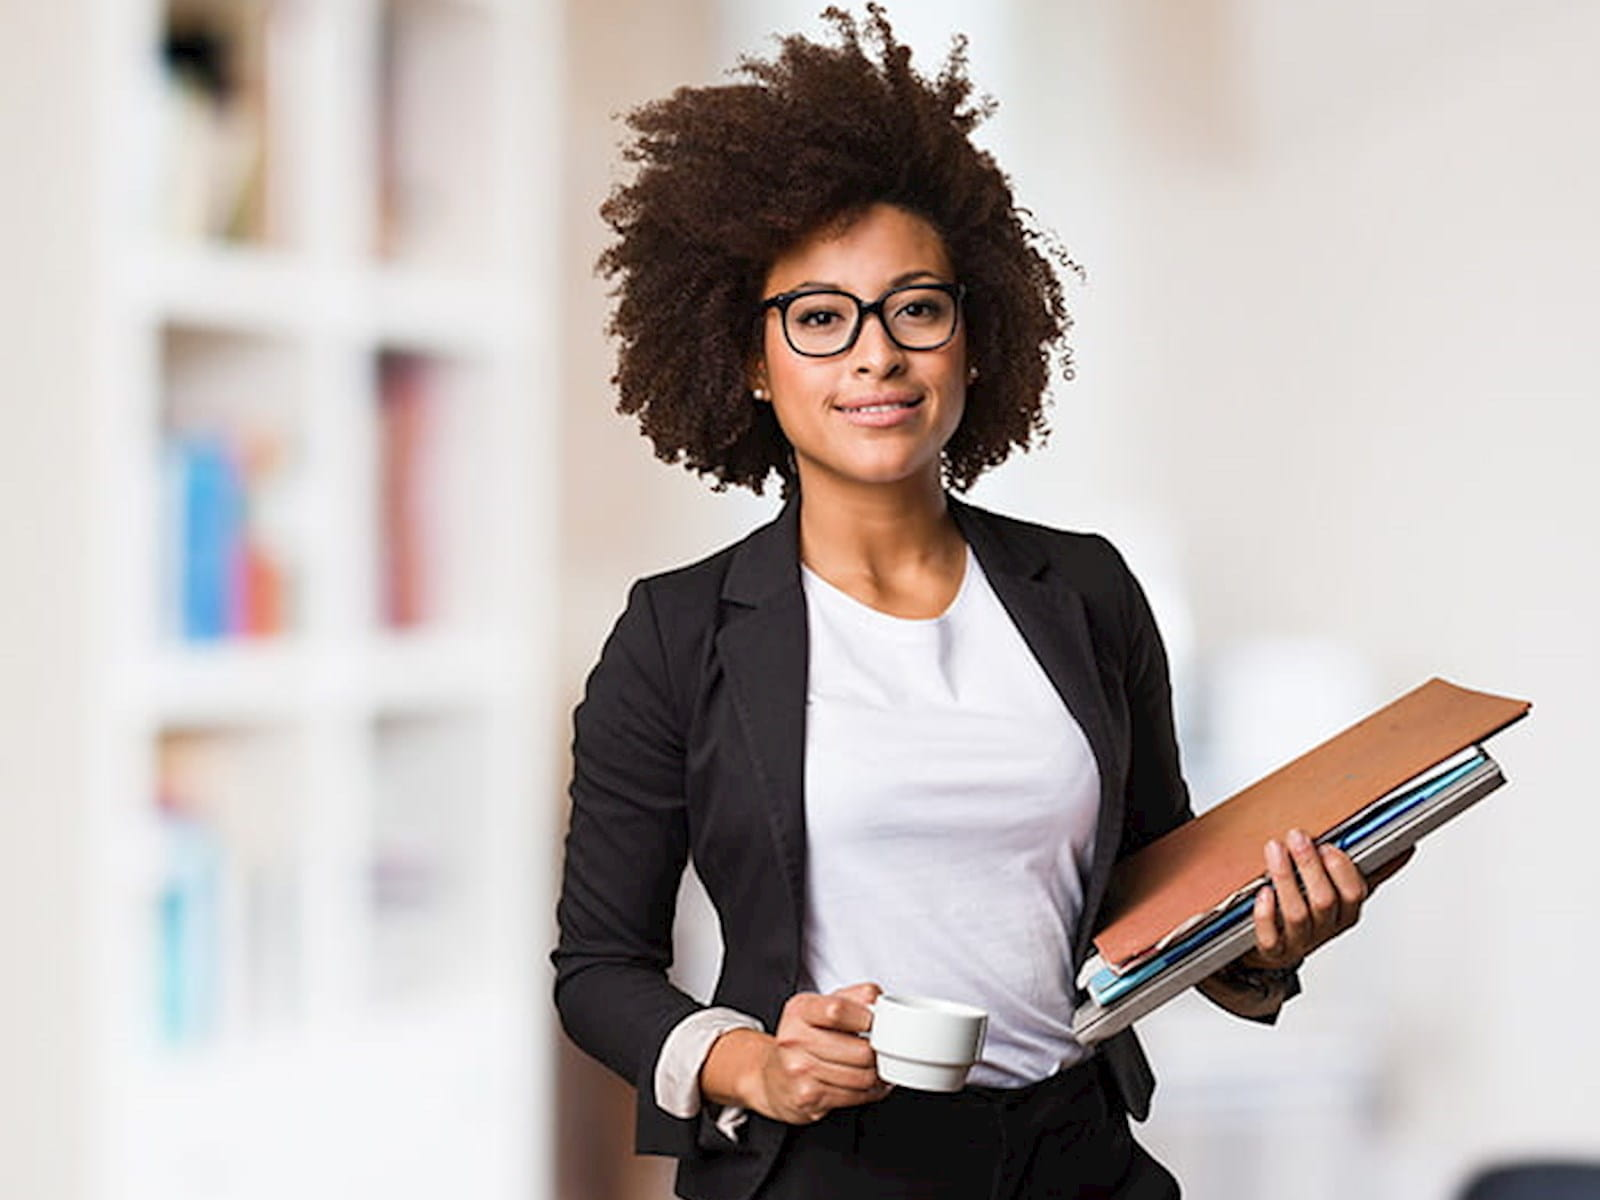 Professional woman holding files